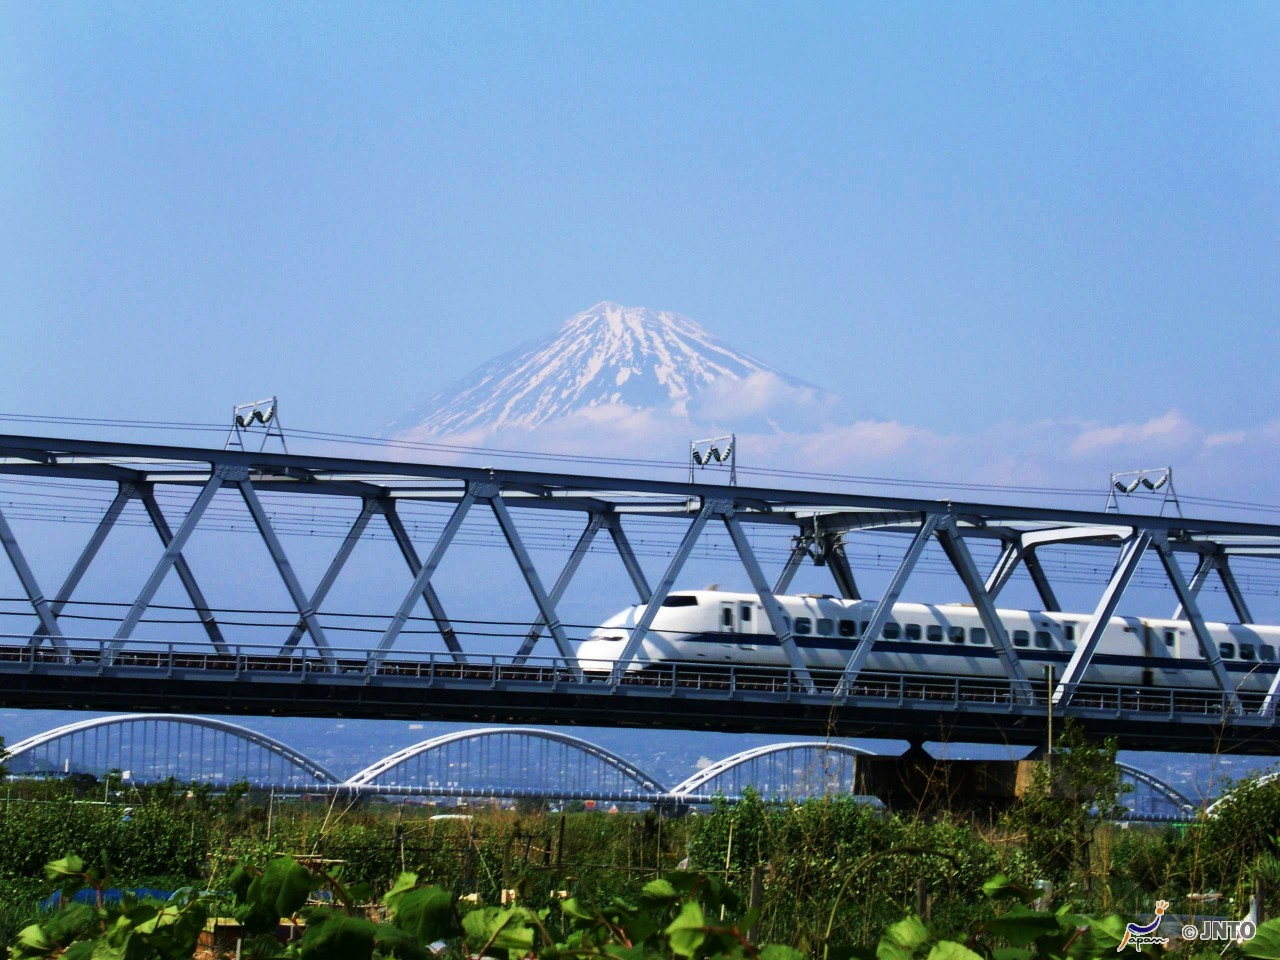 Japan Railways is the best way to access Mt. Fuji? How much can we use Japan Rail Pass to go to Mt. Fuji?